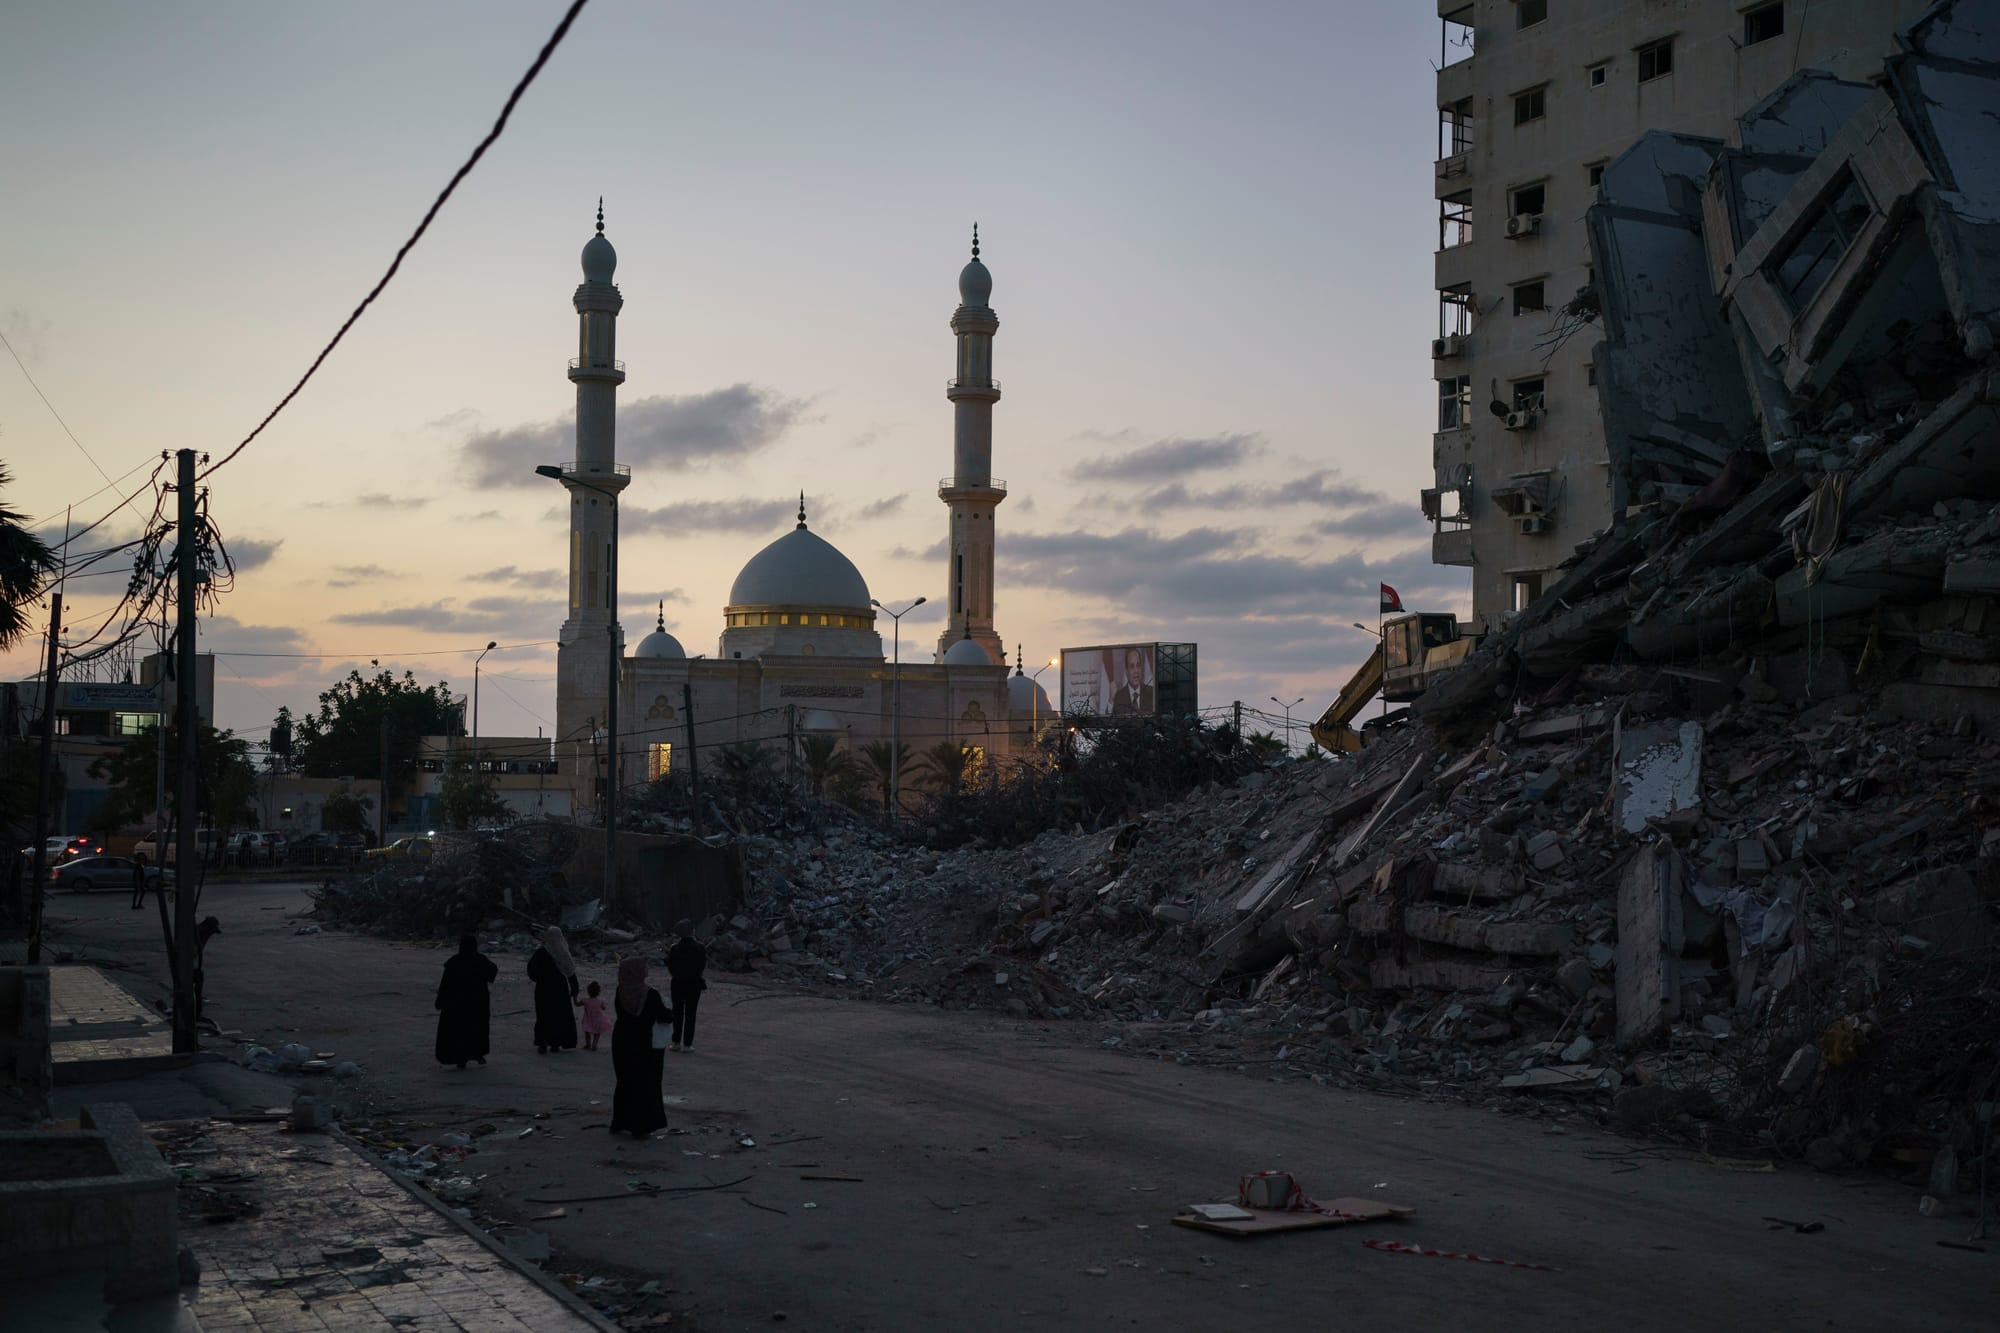 Palestinians walk next to the rubble of a destroyed building.